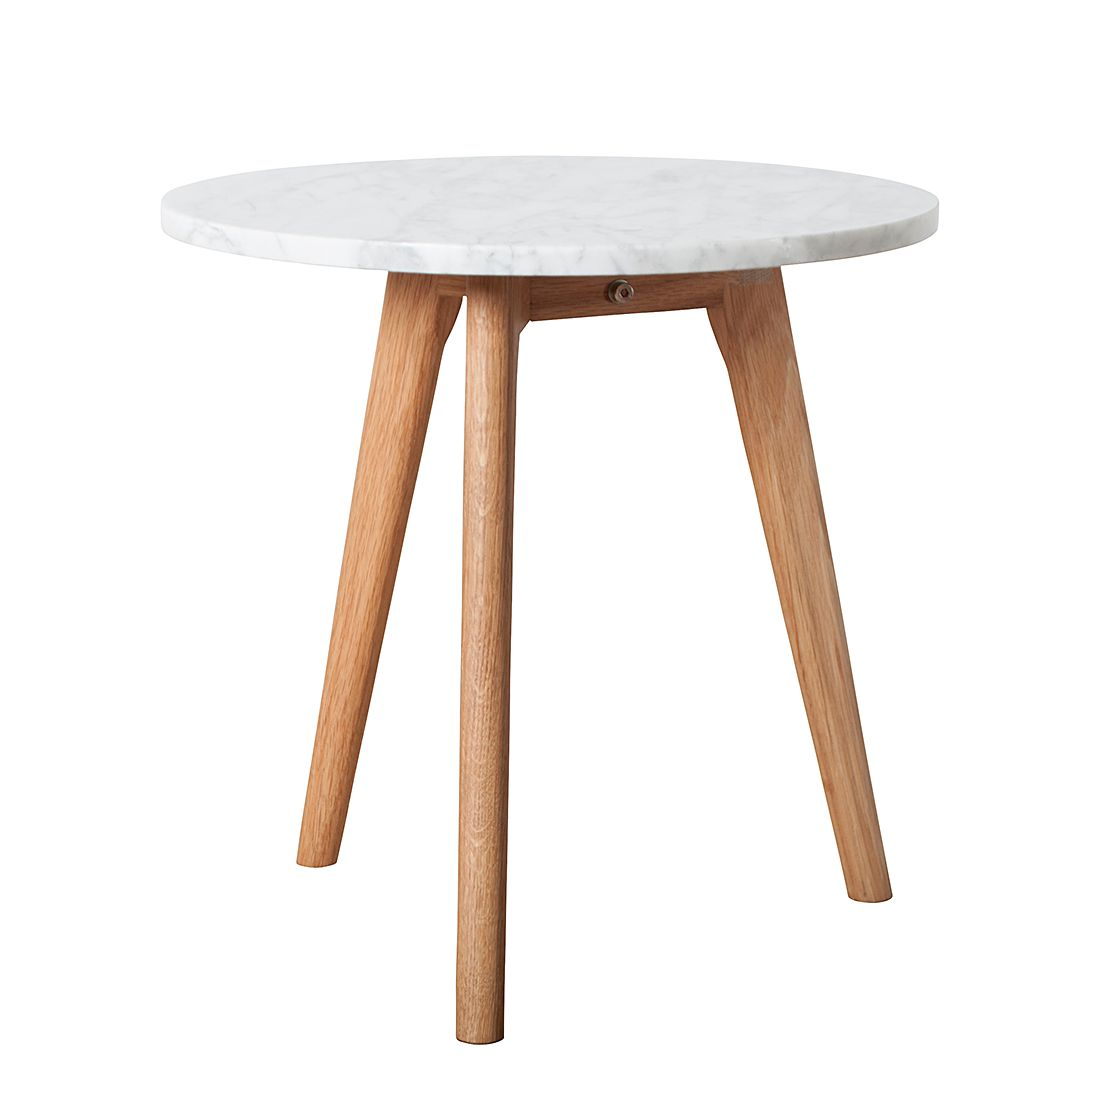 Table d'appoint Stone M - Blanc, Zuiver